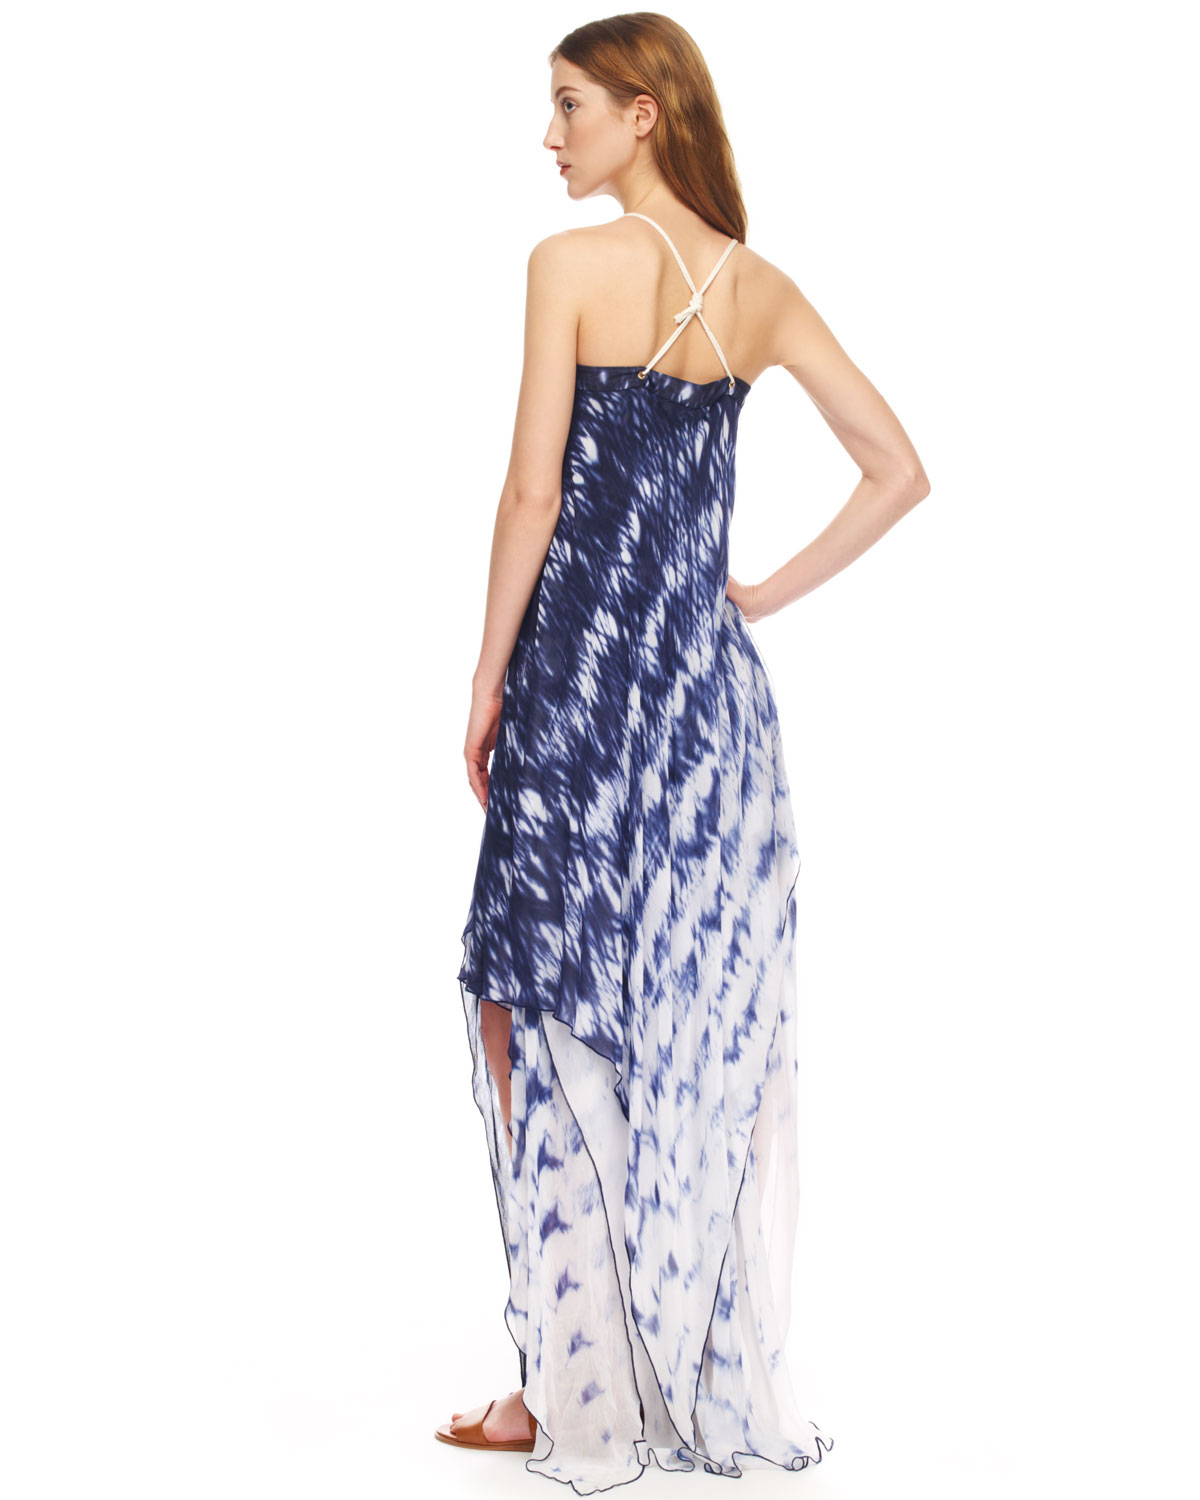 031602c4fda Lyst - Michael Kors Printed Layered Maxi Dress in White